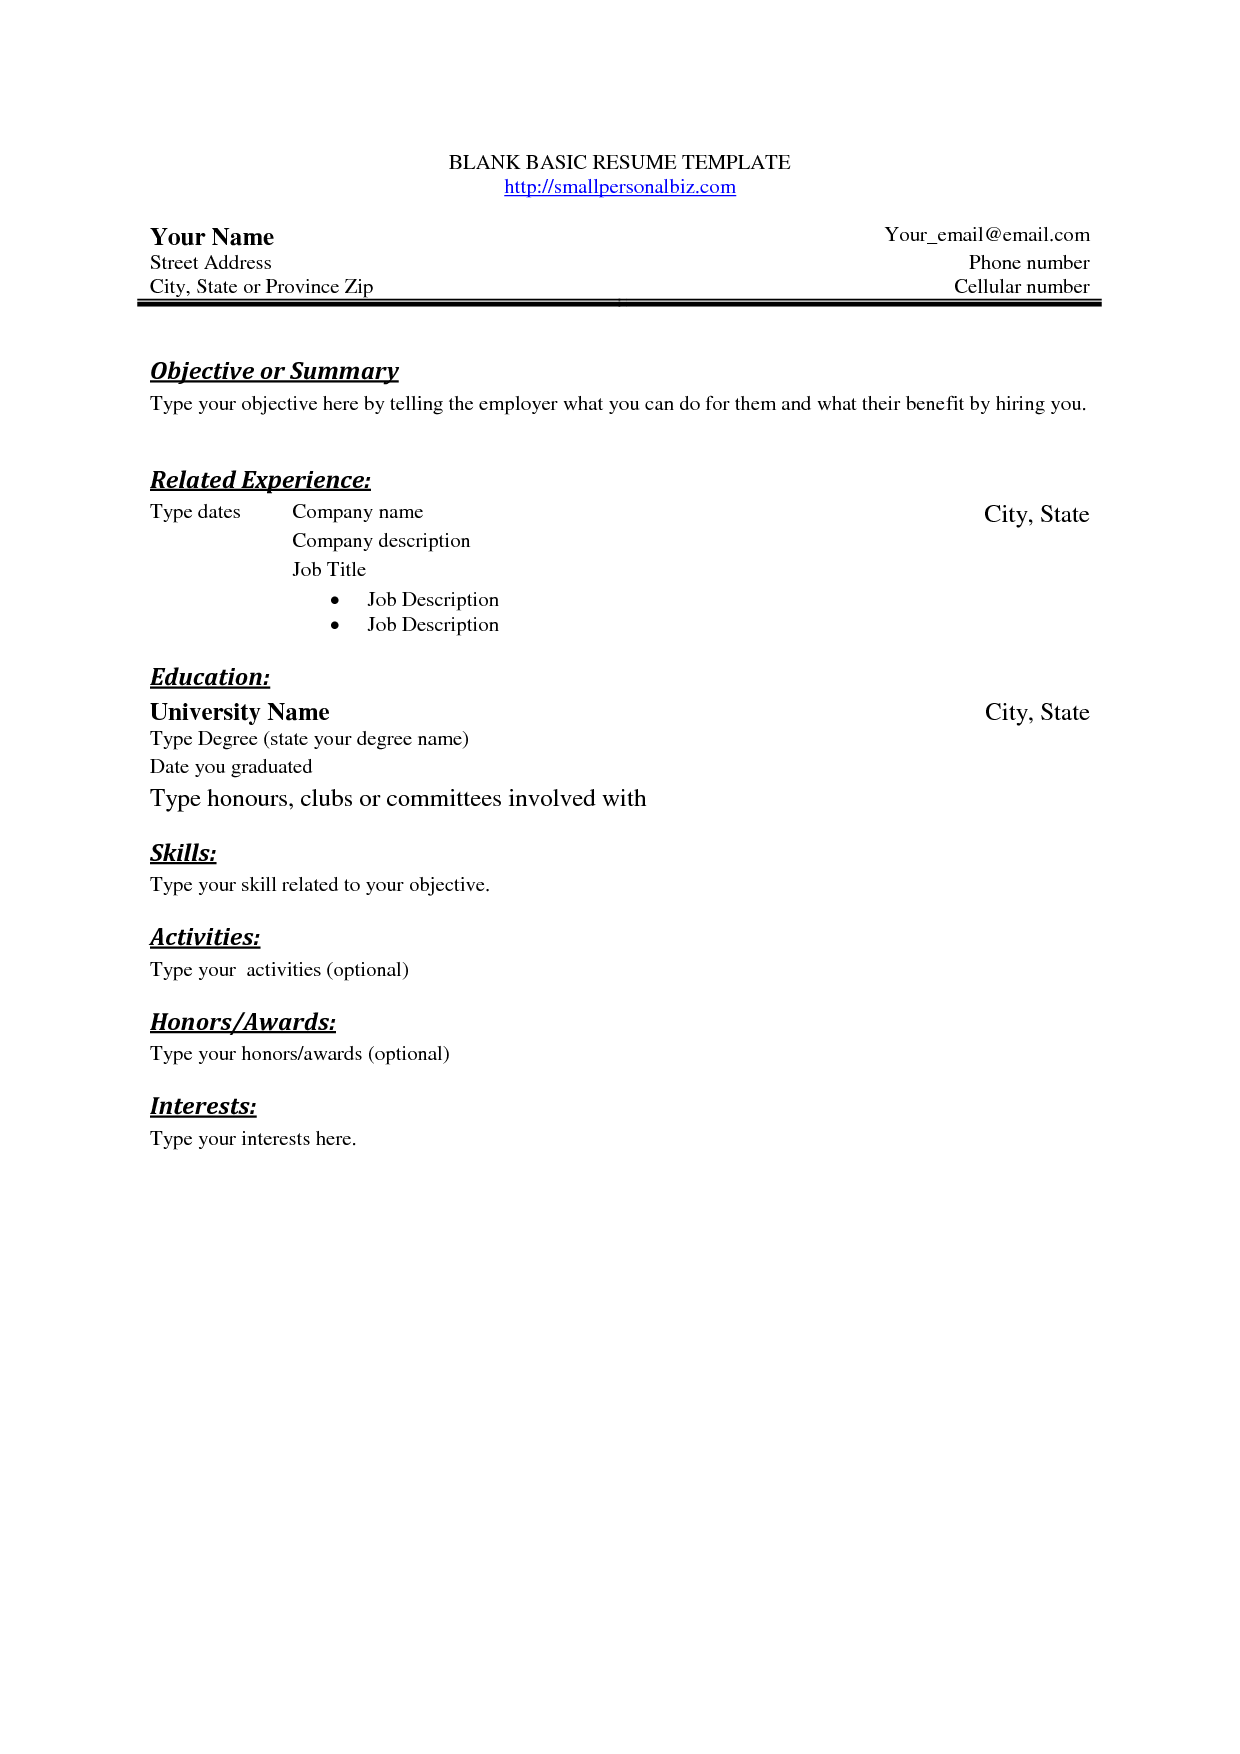 Free Basic Blank Resume Template Free Basic Sample Resume Basic Resume Simple Resume Examples Basic Resume Examples